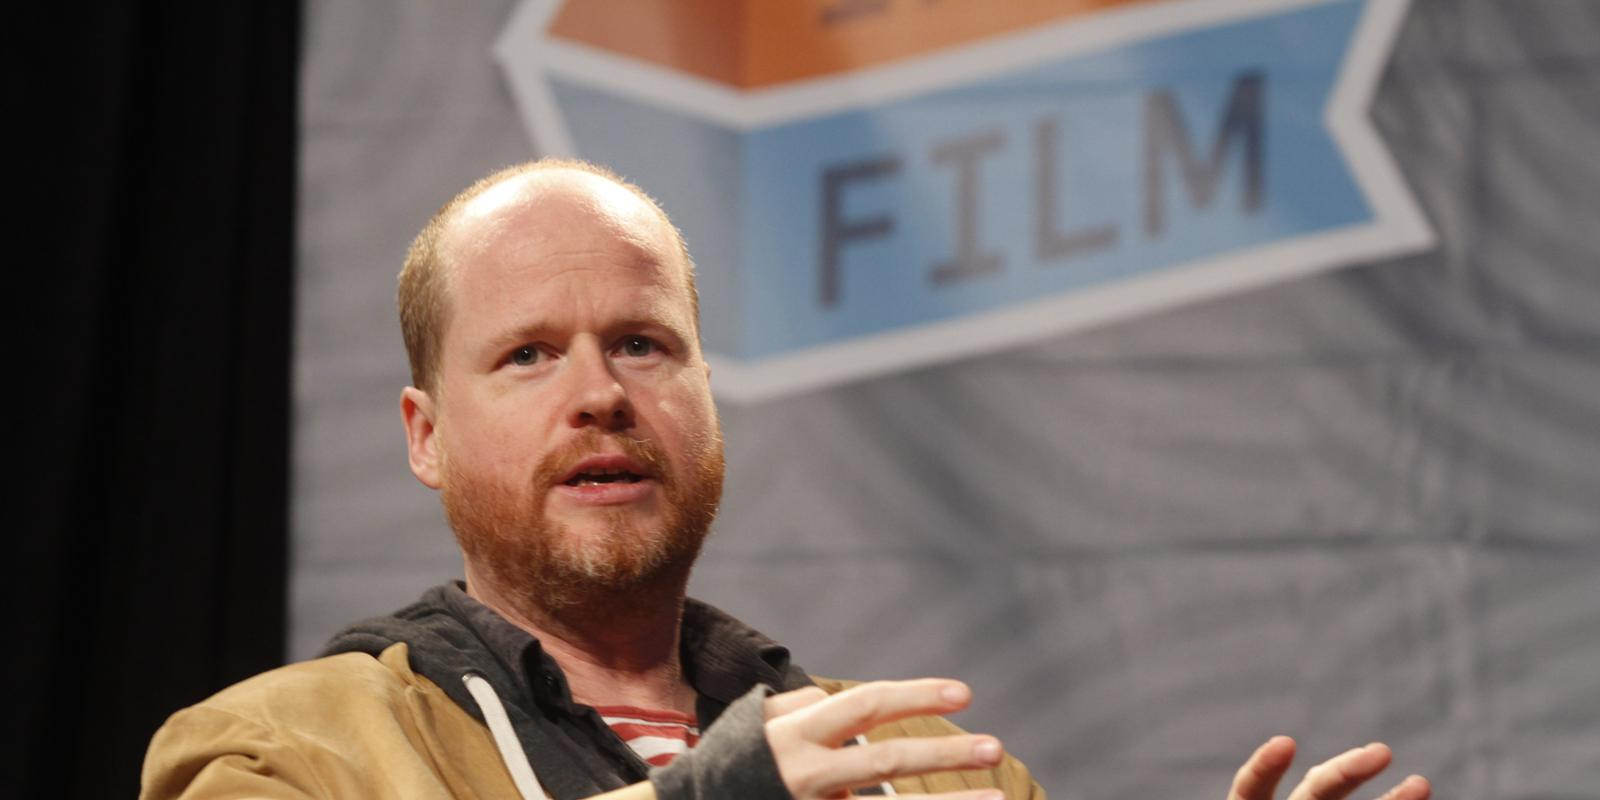 joss whedon american horror storyjoss whedon twitter, joss whedon куртки, joss whedon trump, joss whedon одежда, joss whedon & sonny rhodes, joss whedon comics, joss whedon imdb, joss whedon reddit, joss whedon glee, joss whedon equality now, joss whedon news, joss whedon mass effect, joss whedon syndrome, joss whedon under your spell, joss whedon young, joss whedon musical, joss whedon marvel, joss whedon american horror story, joss whedon twitter firefly, joss whedon and wife